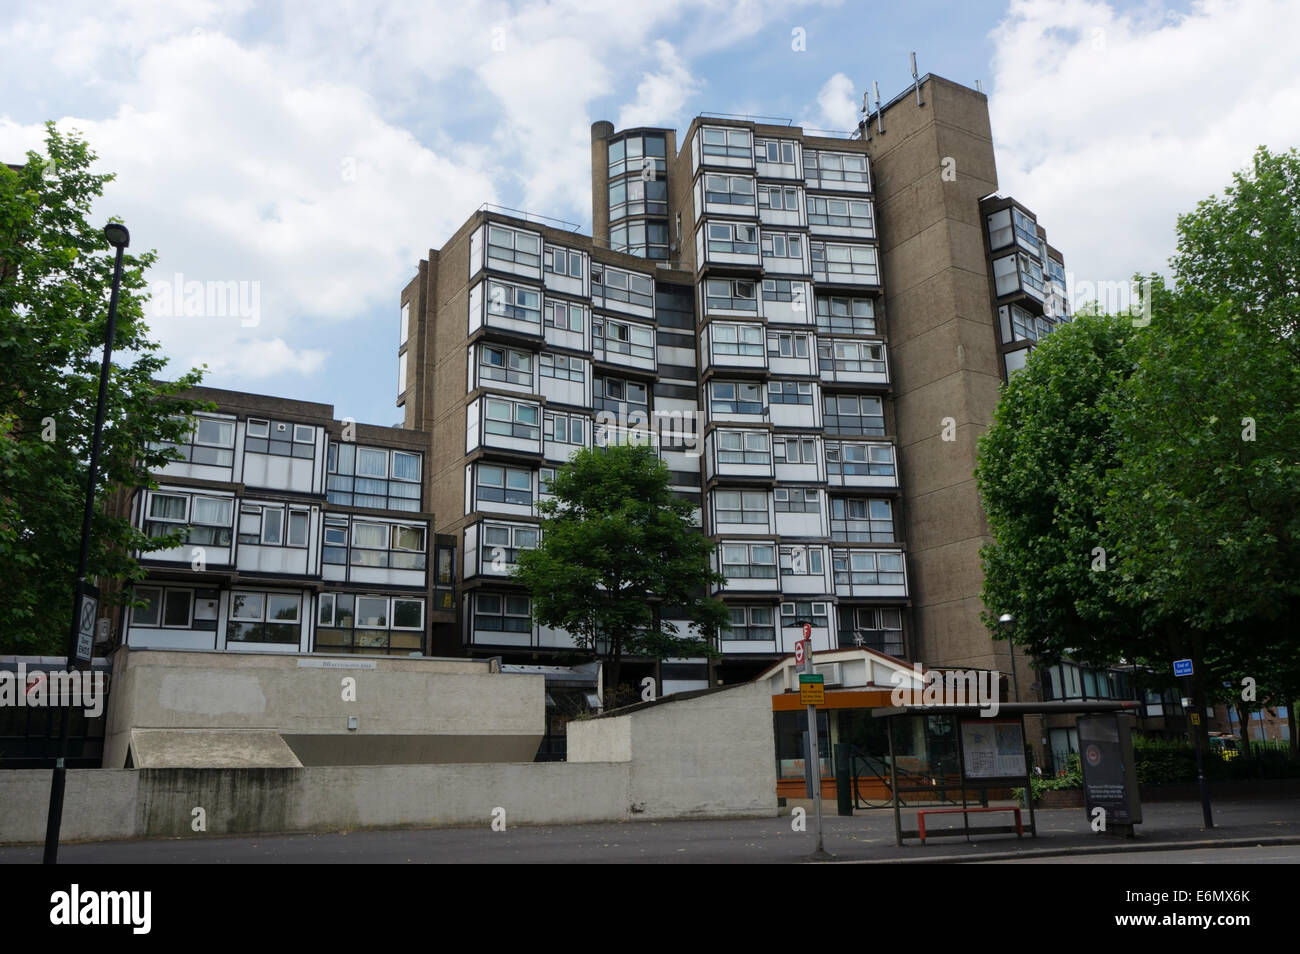 Lambeth Towers, designed by George Finch of Lambeth Architect's Department in 1965. - Stock Image